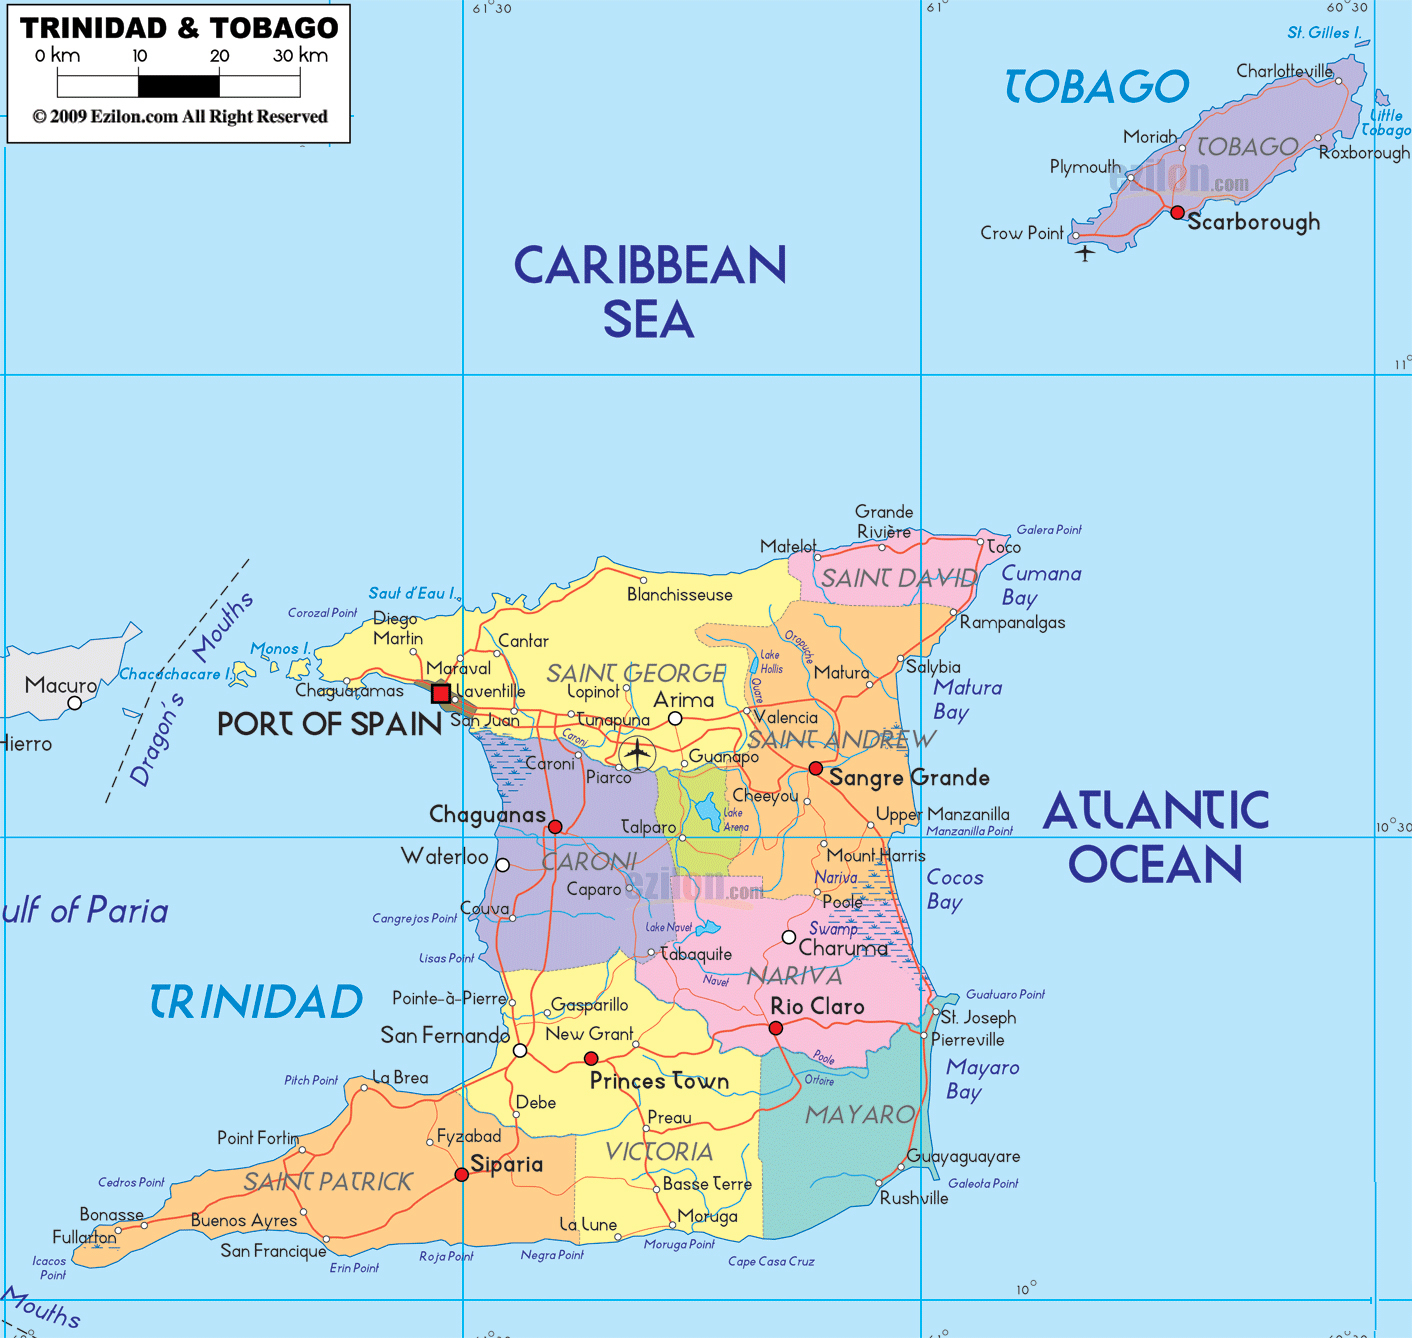 Tobago Island: Large Detailed Administrative Map Of Trinidad And Tobago